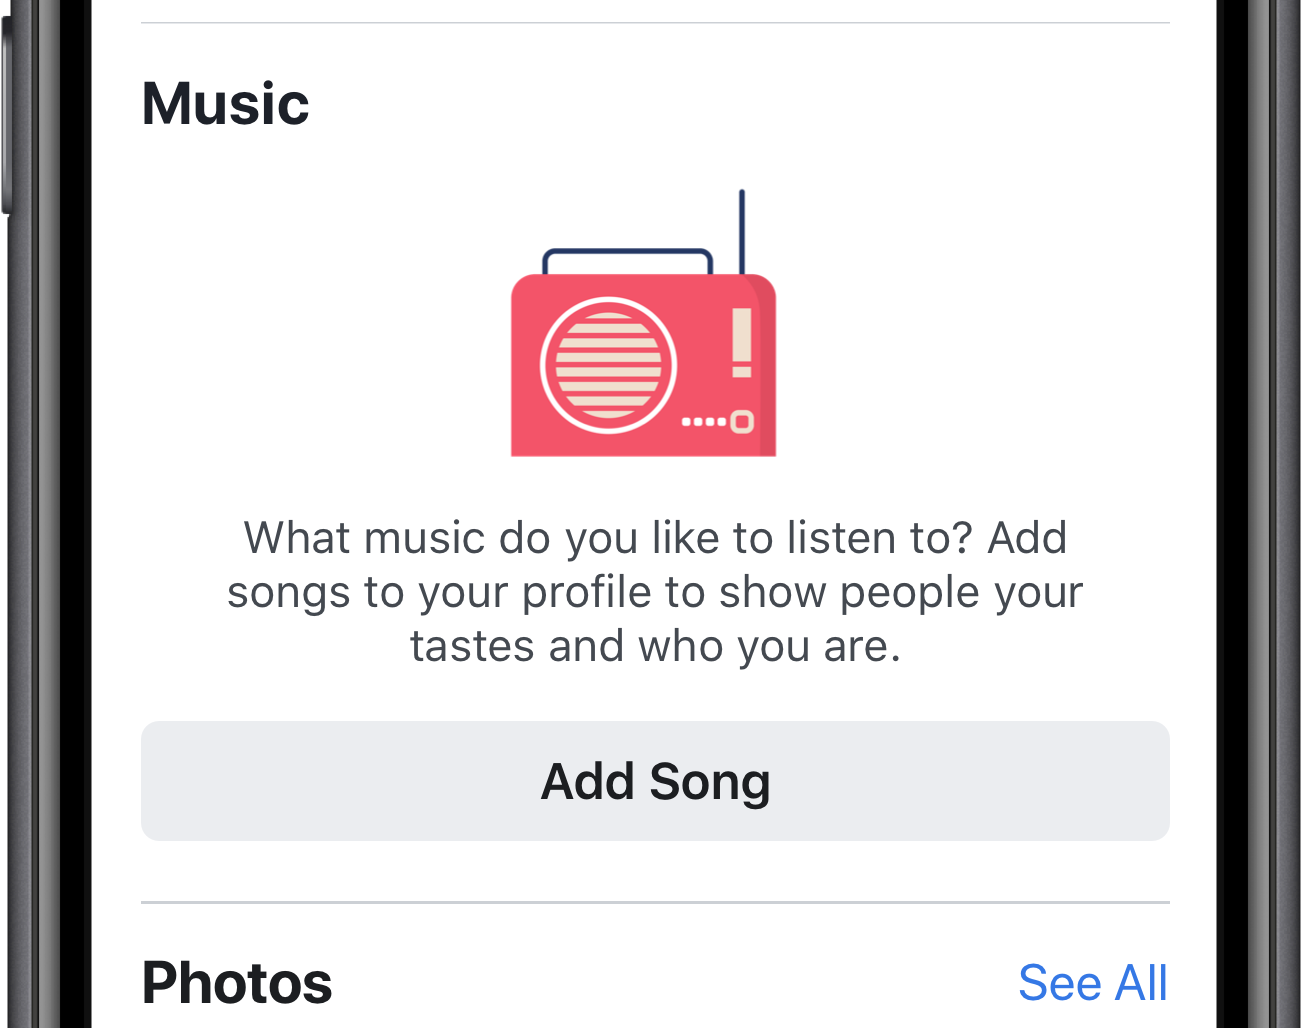 You can also pick a favorite song to pin to the top of your profile.